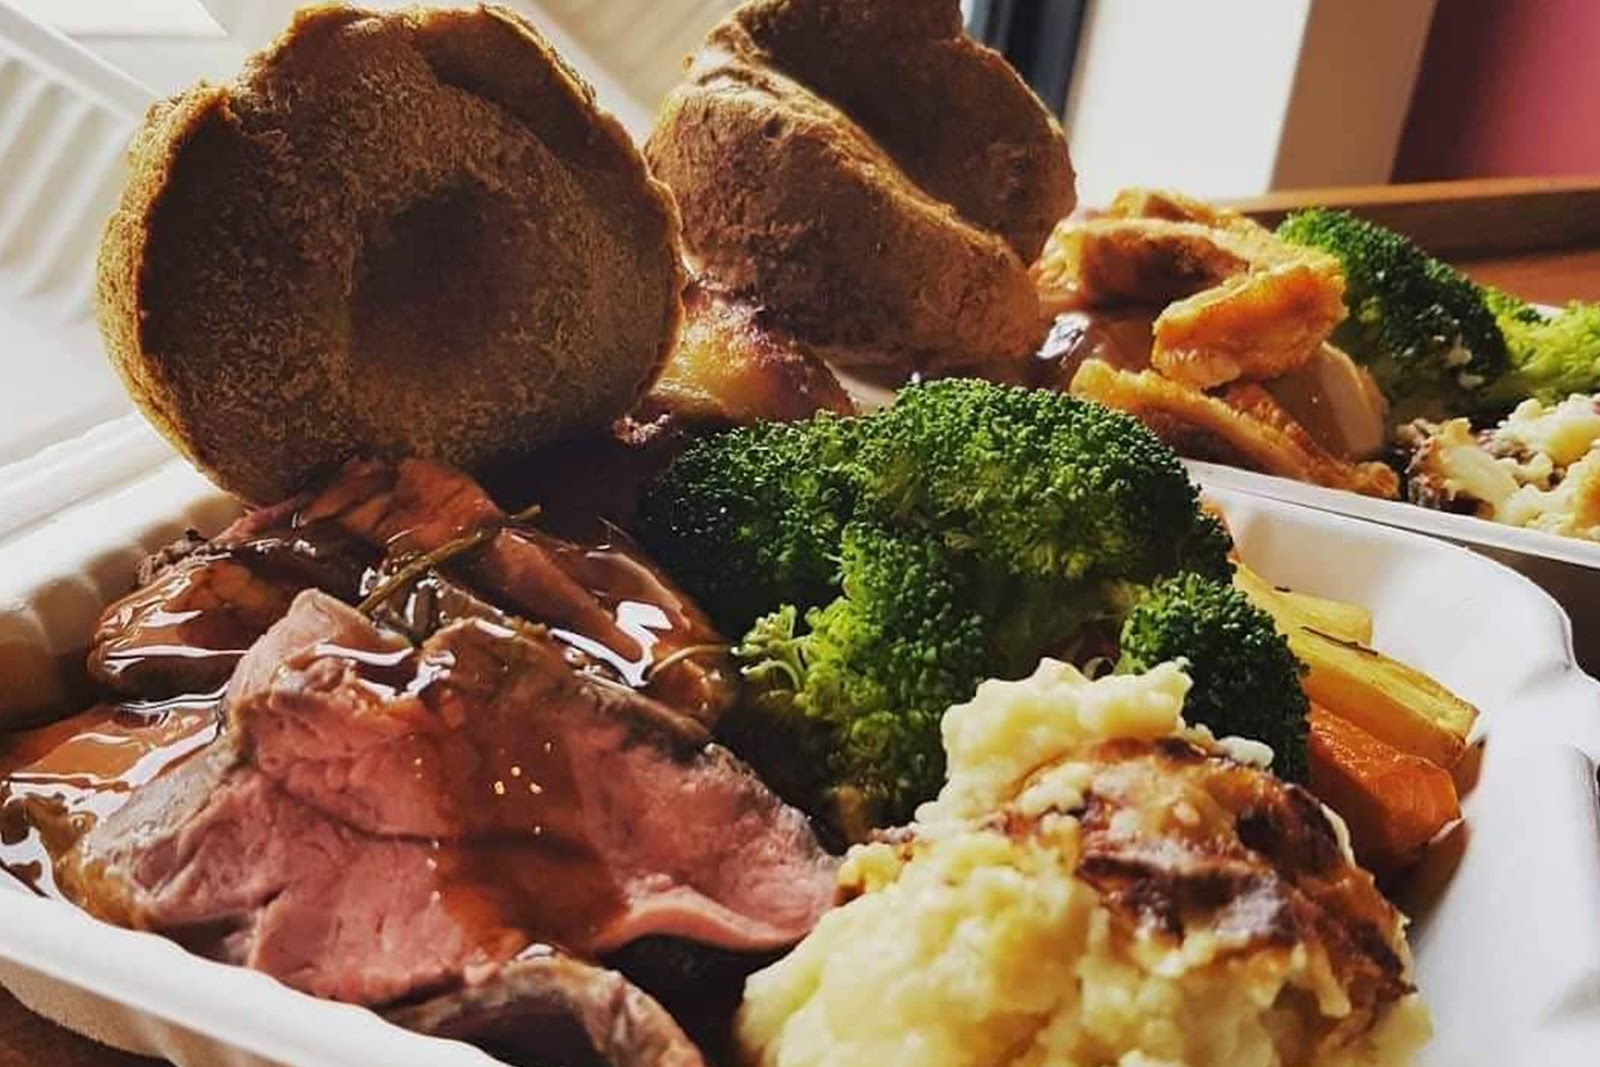 Baker Street Kitchen is providing cooked breakfasts and Sunday lunch for collection or delivery this Mother's Day